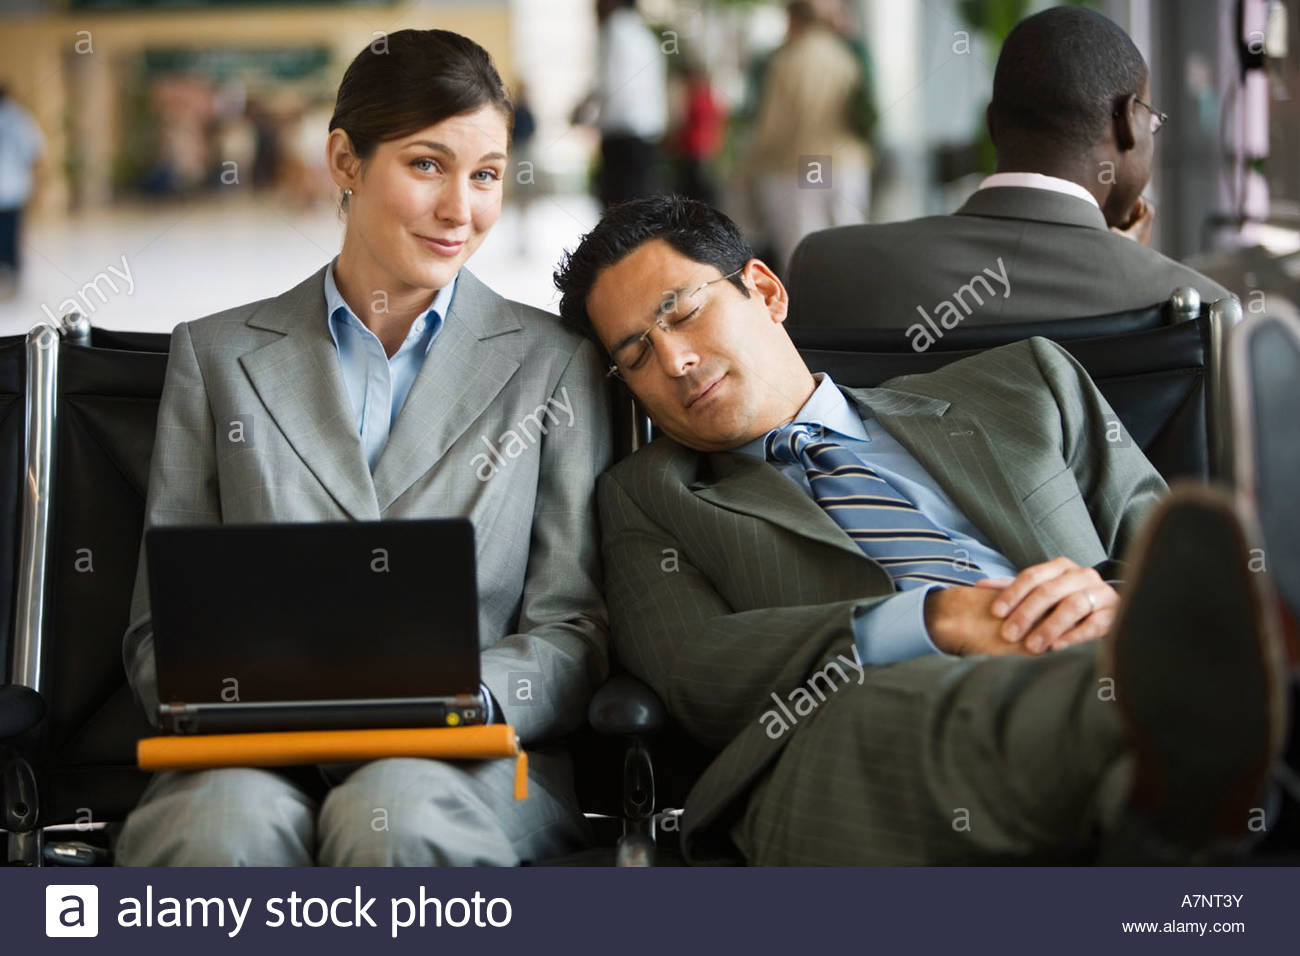 Two business people sitting in airport terminal tired man resting head against woman s shoulder woman using laptop - Stock Image